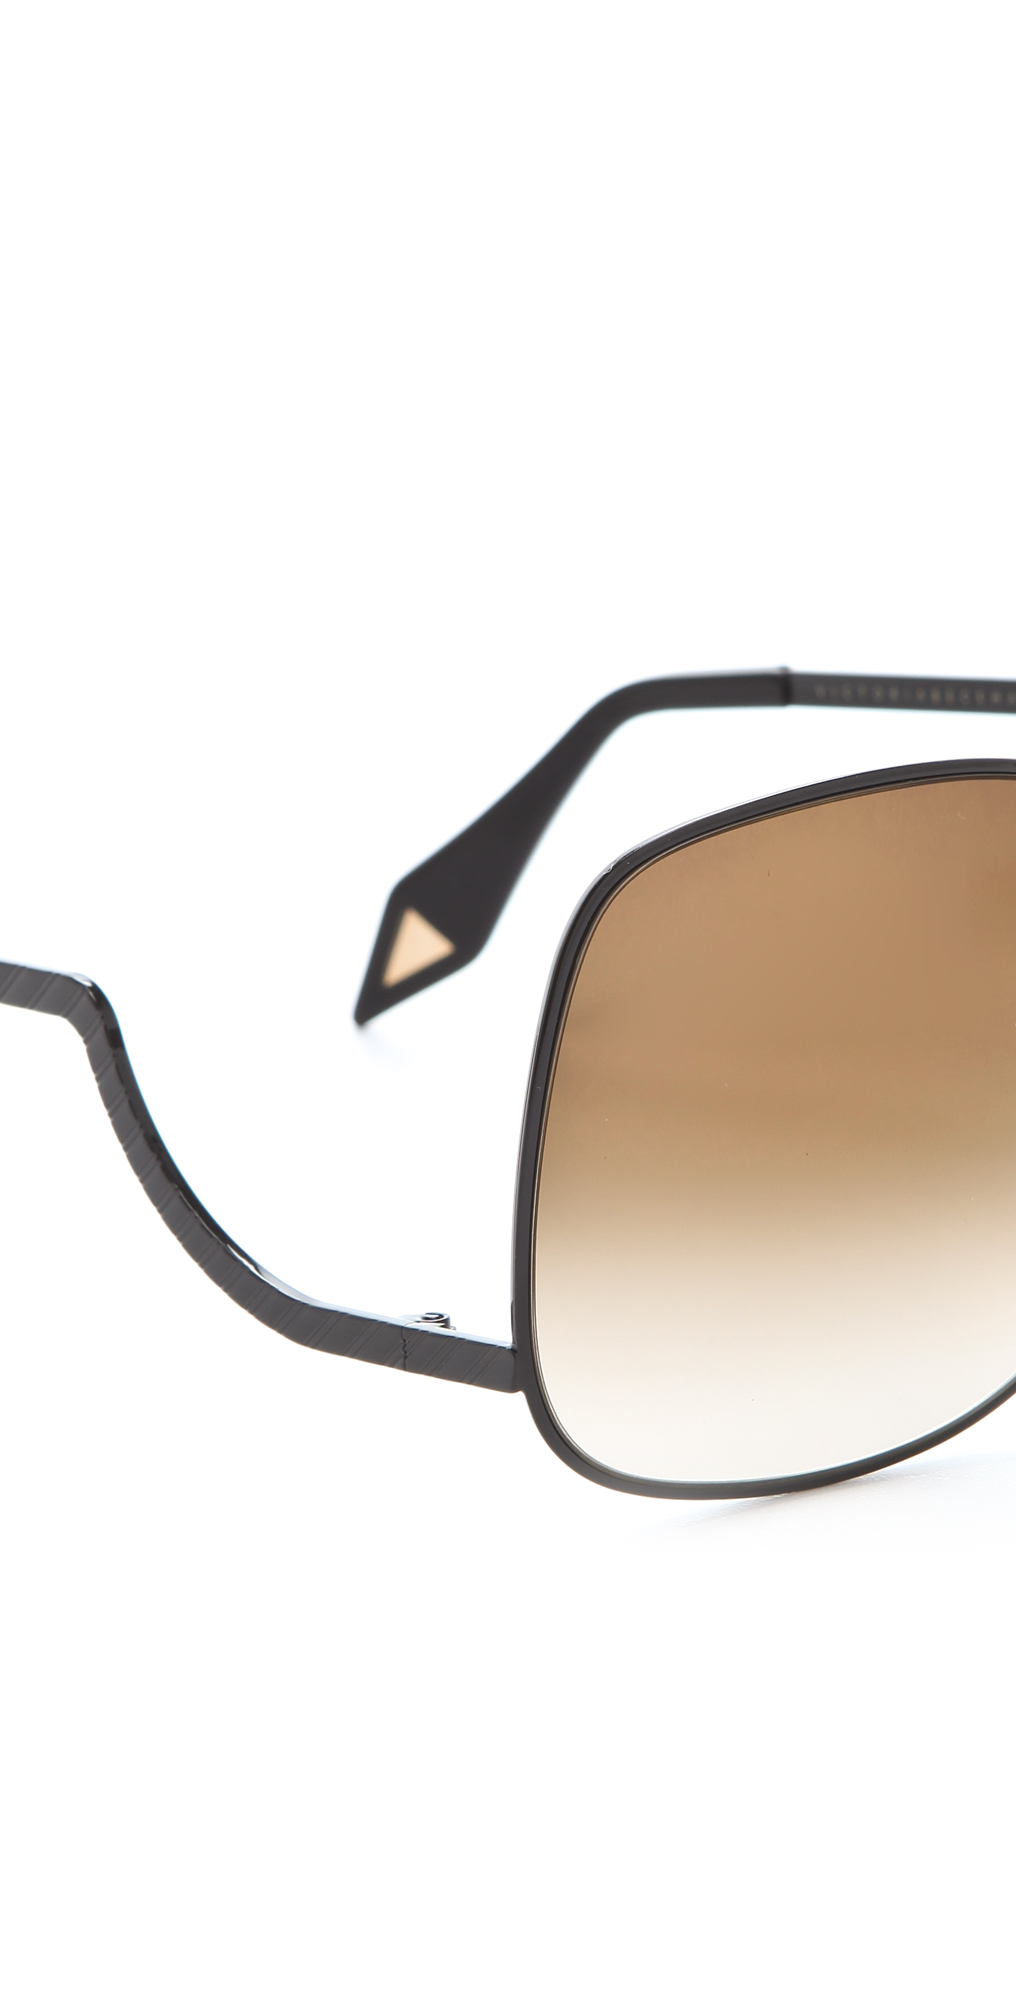 515fb2f20f3 Victoria Beckham Metal Drop Temple Sunglasses